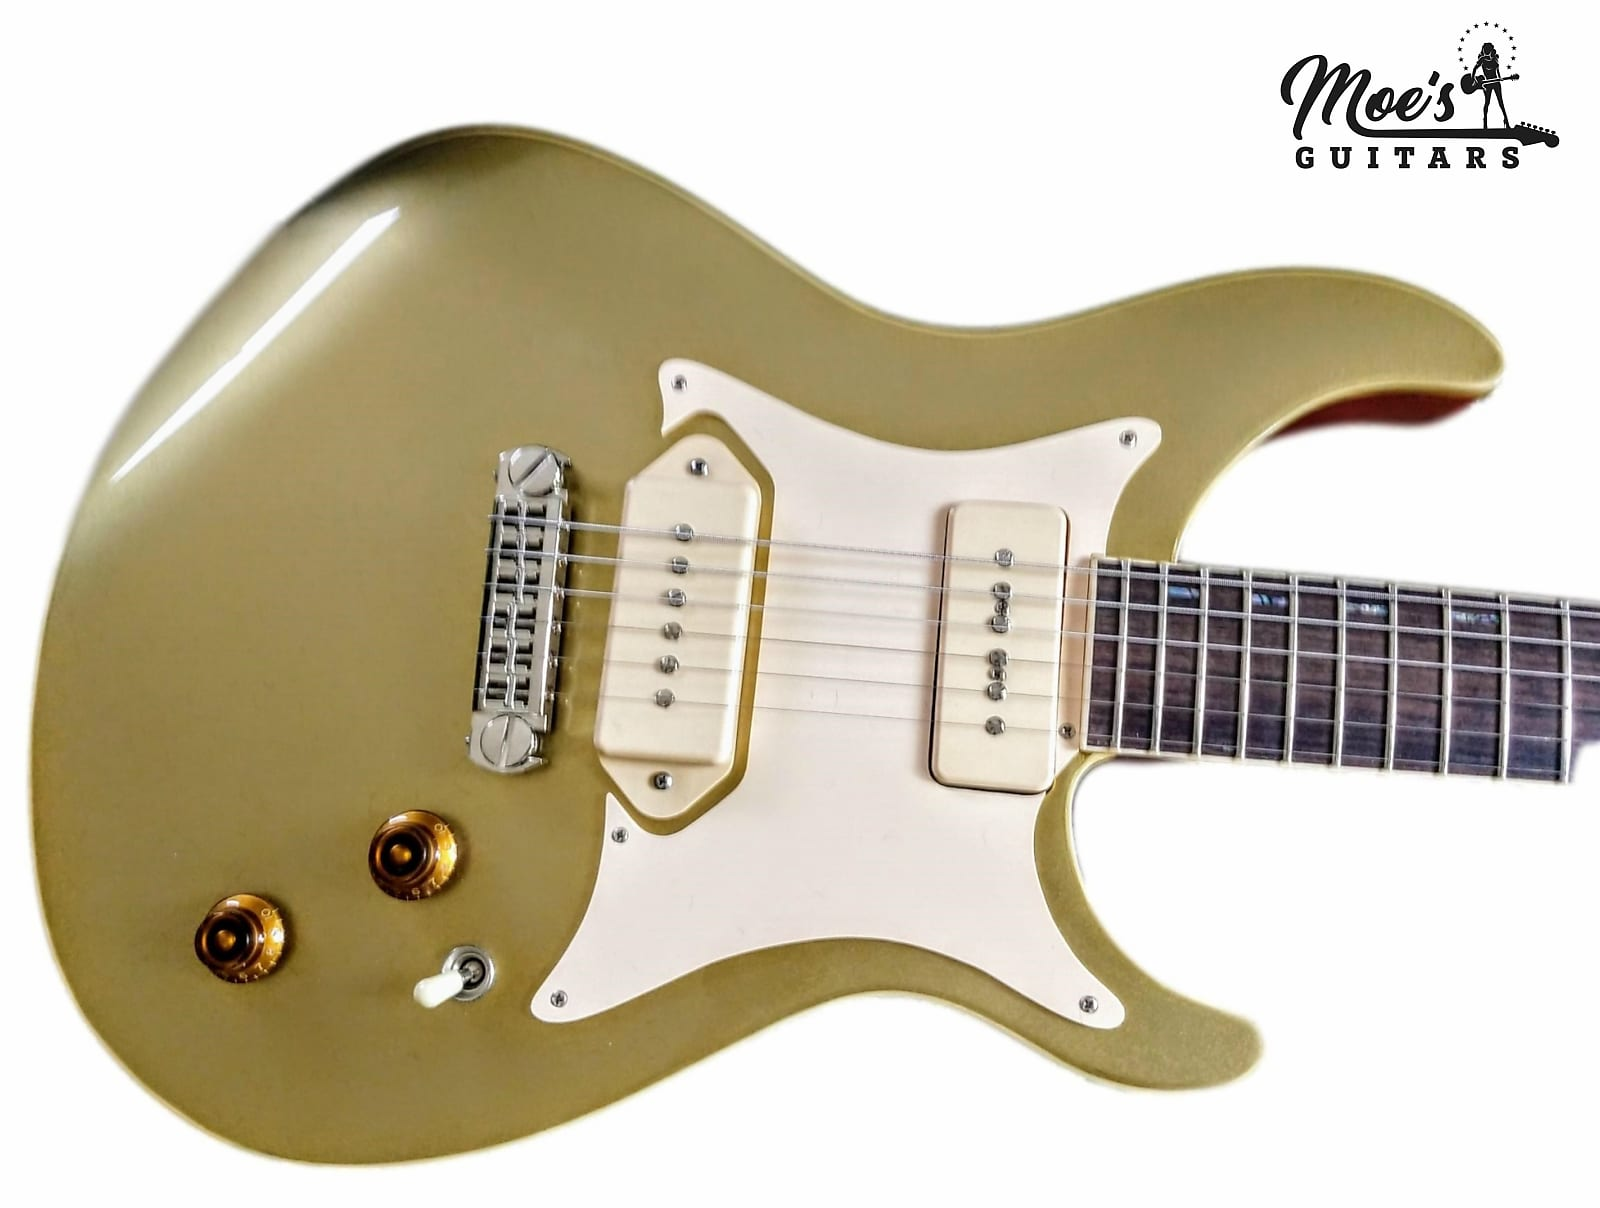 Giffin Guitars T Deluxe 2009 Video Demonstration of the  Amalfitano P90's